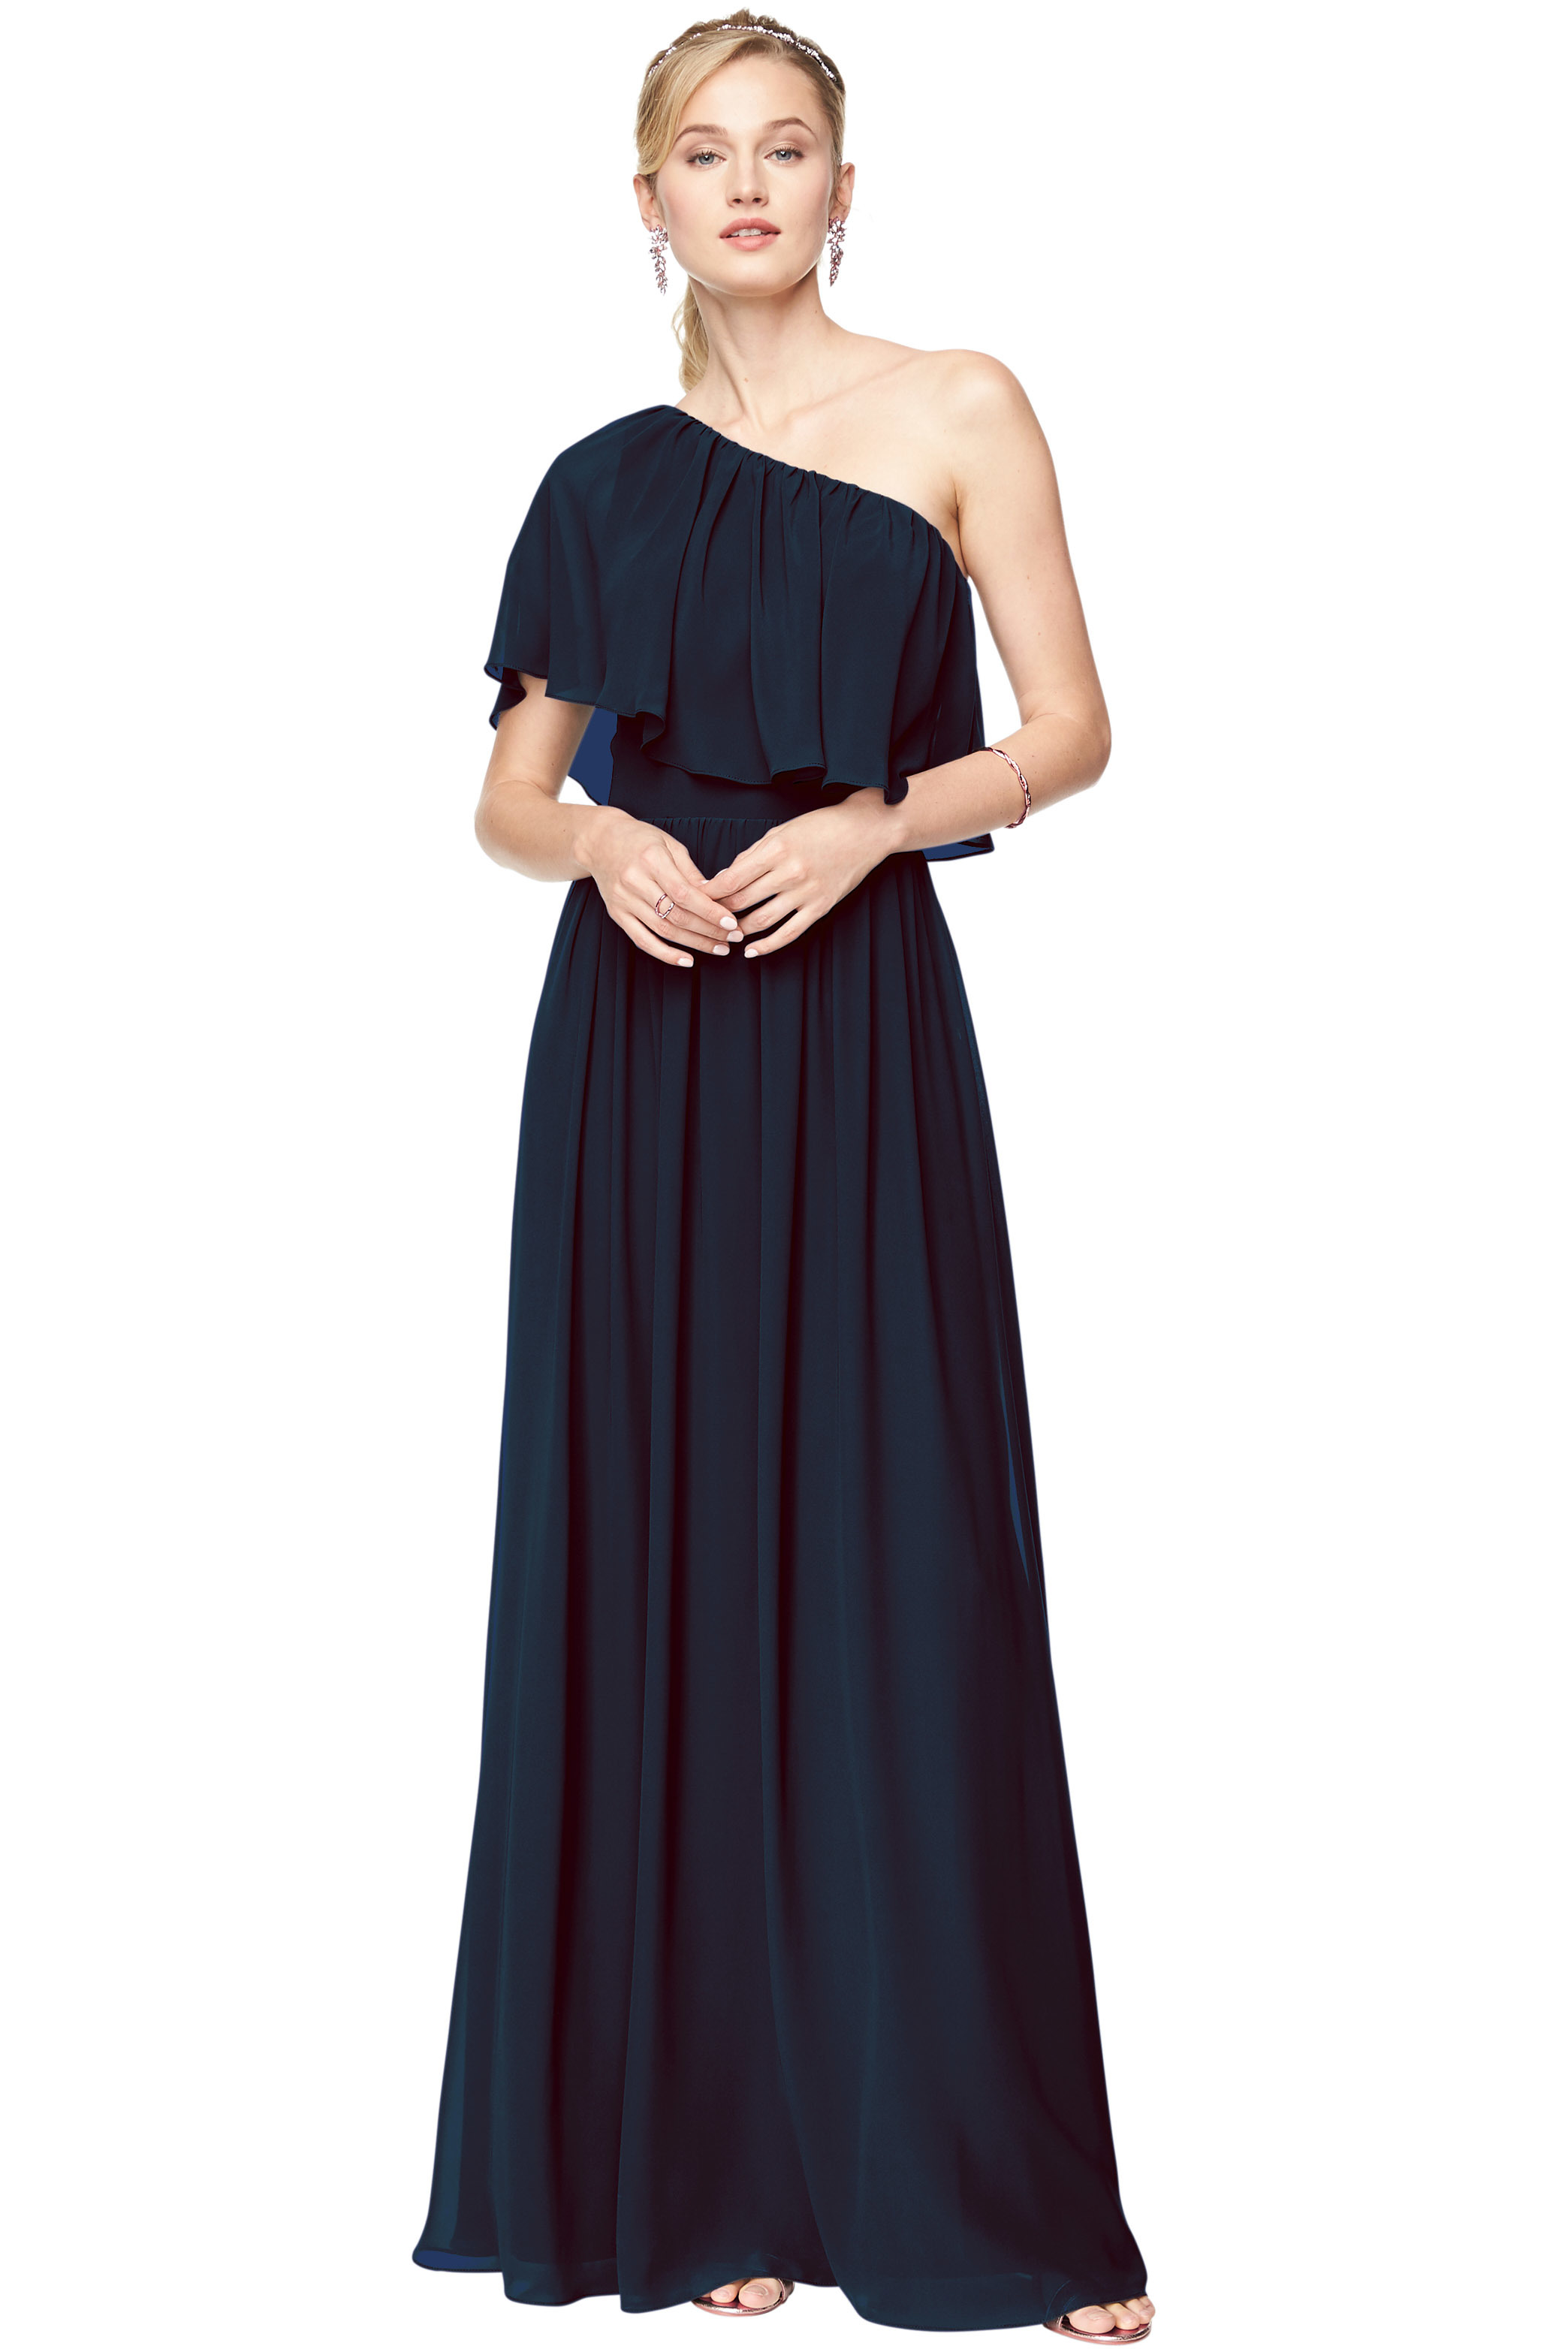 Bill Levkoff NAVY Chiffon One-Shoulder A-Line gown, $156.40 Front